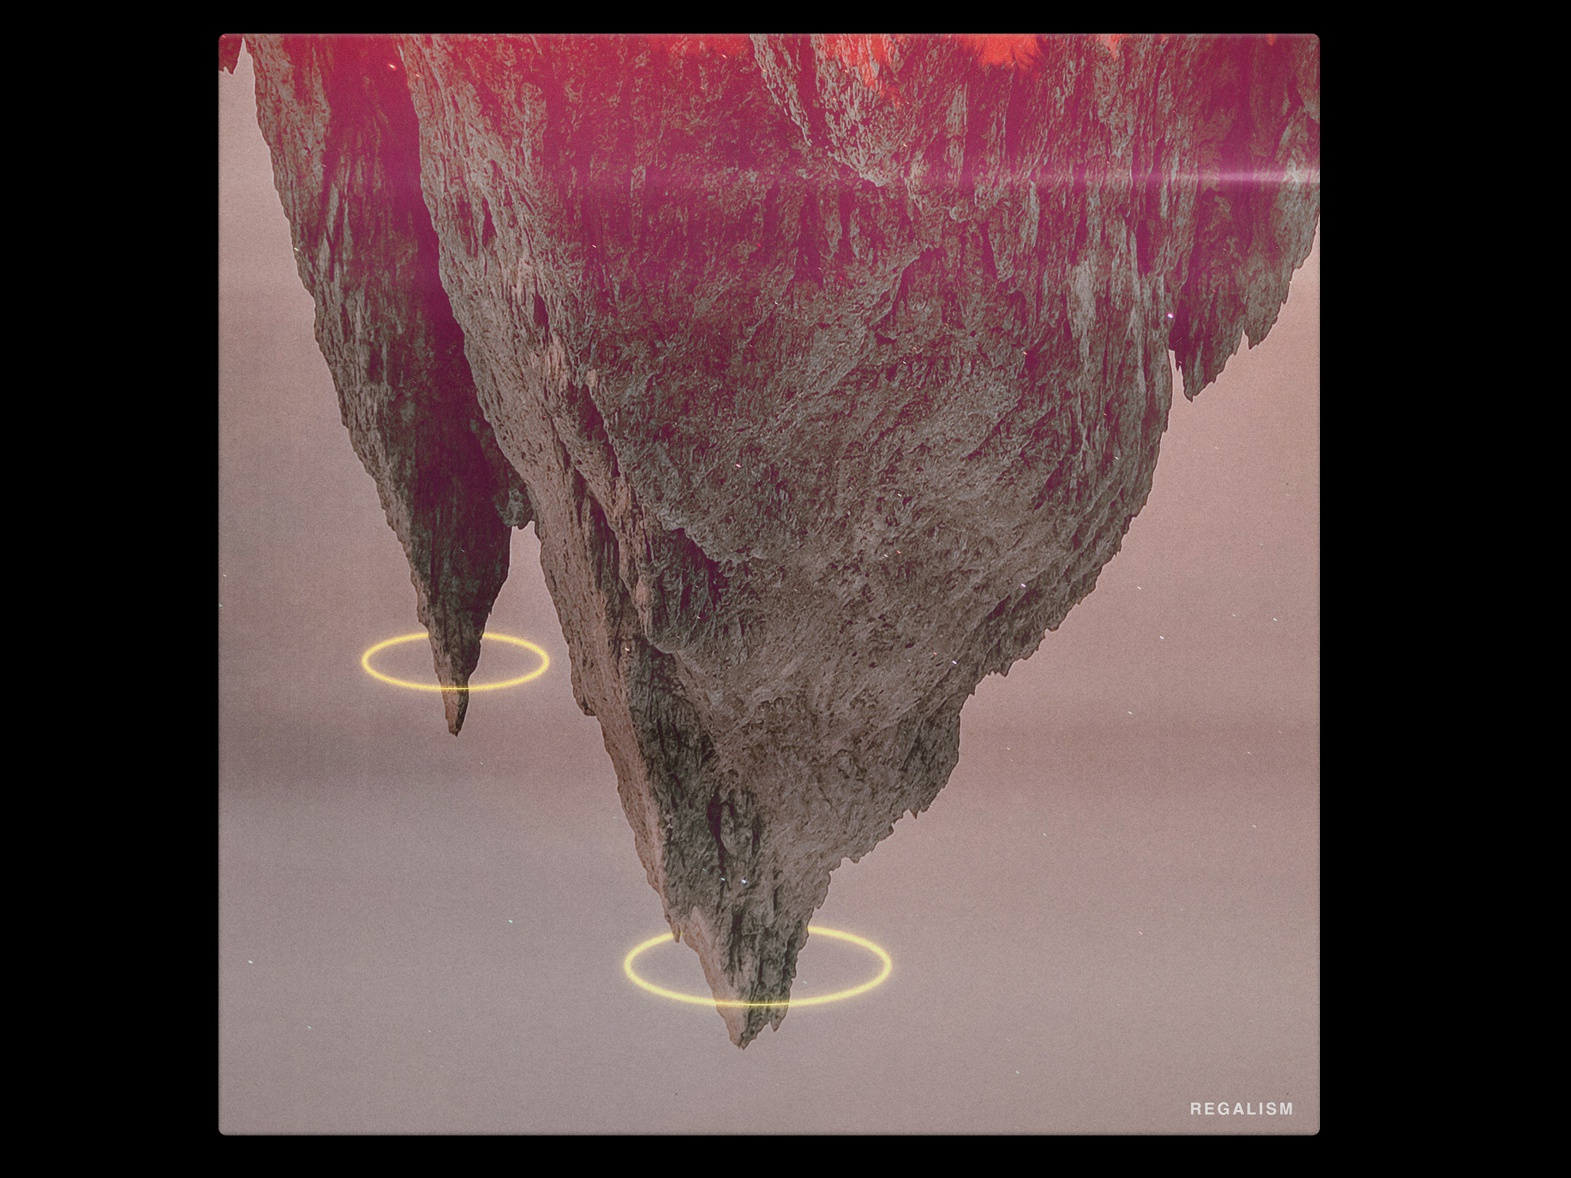 REGALISM mountain regalism red grey pink neon geometry abstract gradiant album album cover design album cover album artwork album art illustration design lachute color kev andré perrin